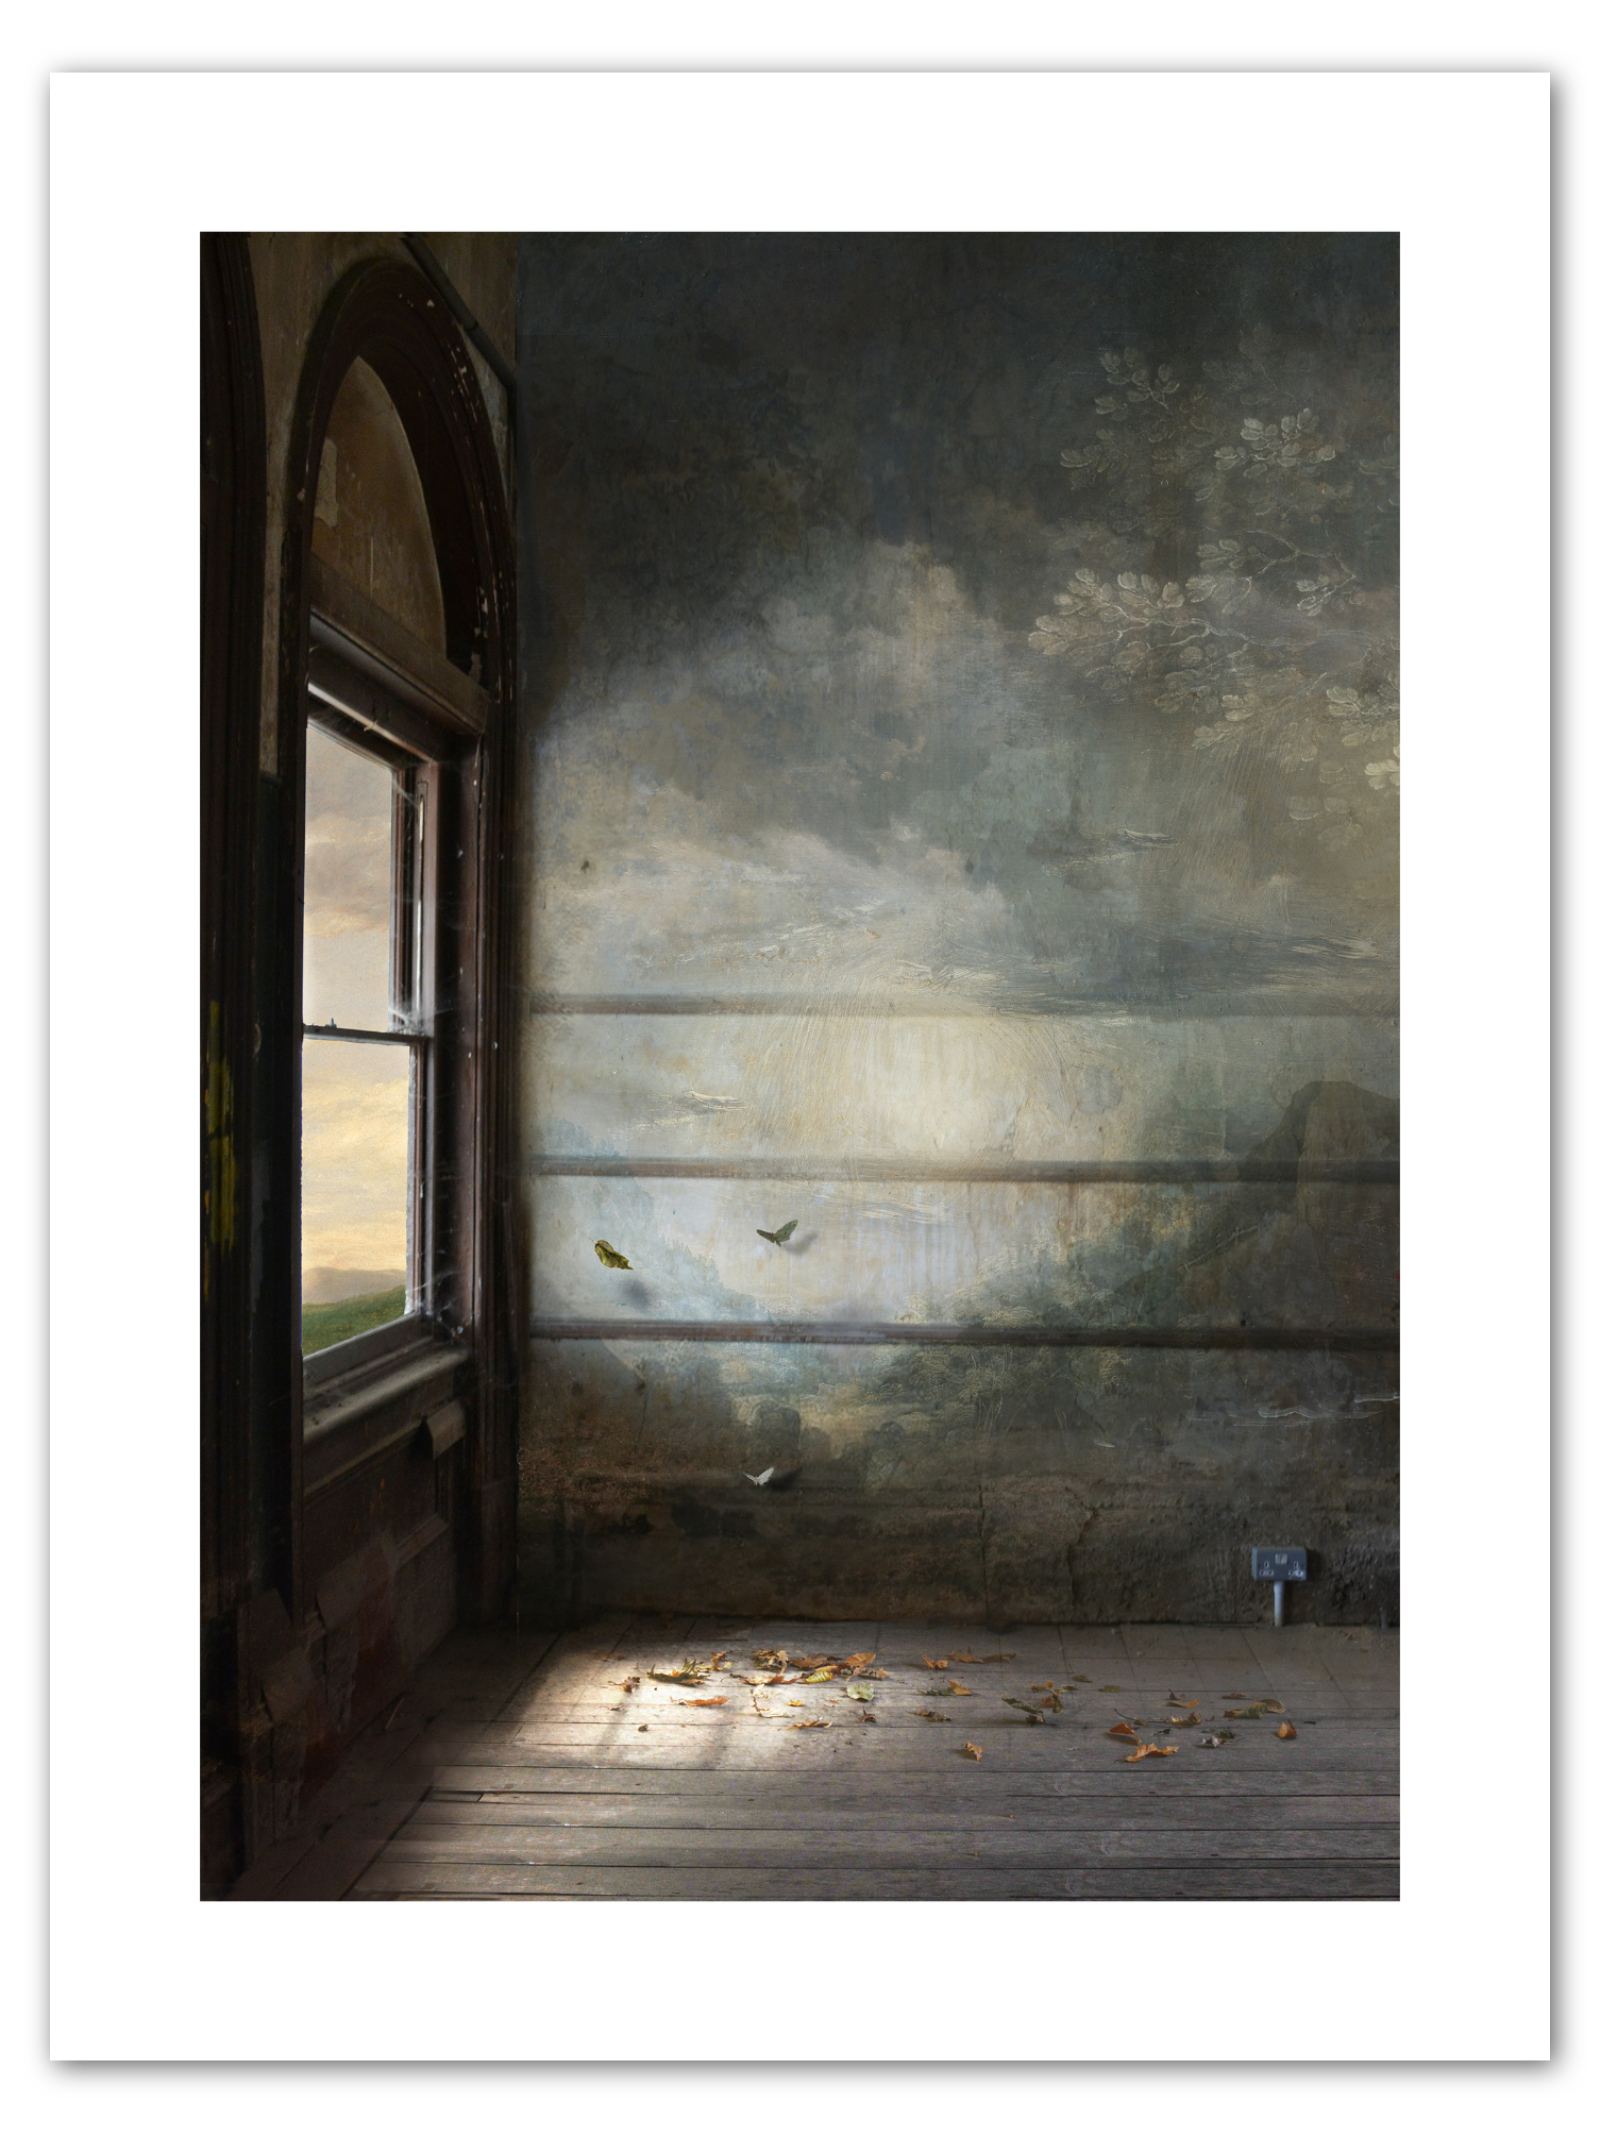 Waiting Room - Suzanne Moxhay_1